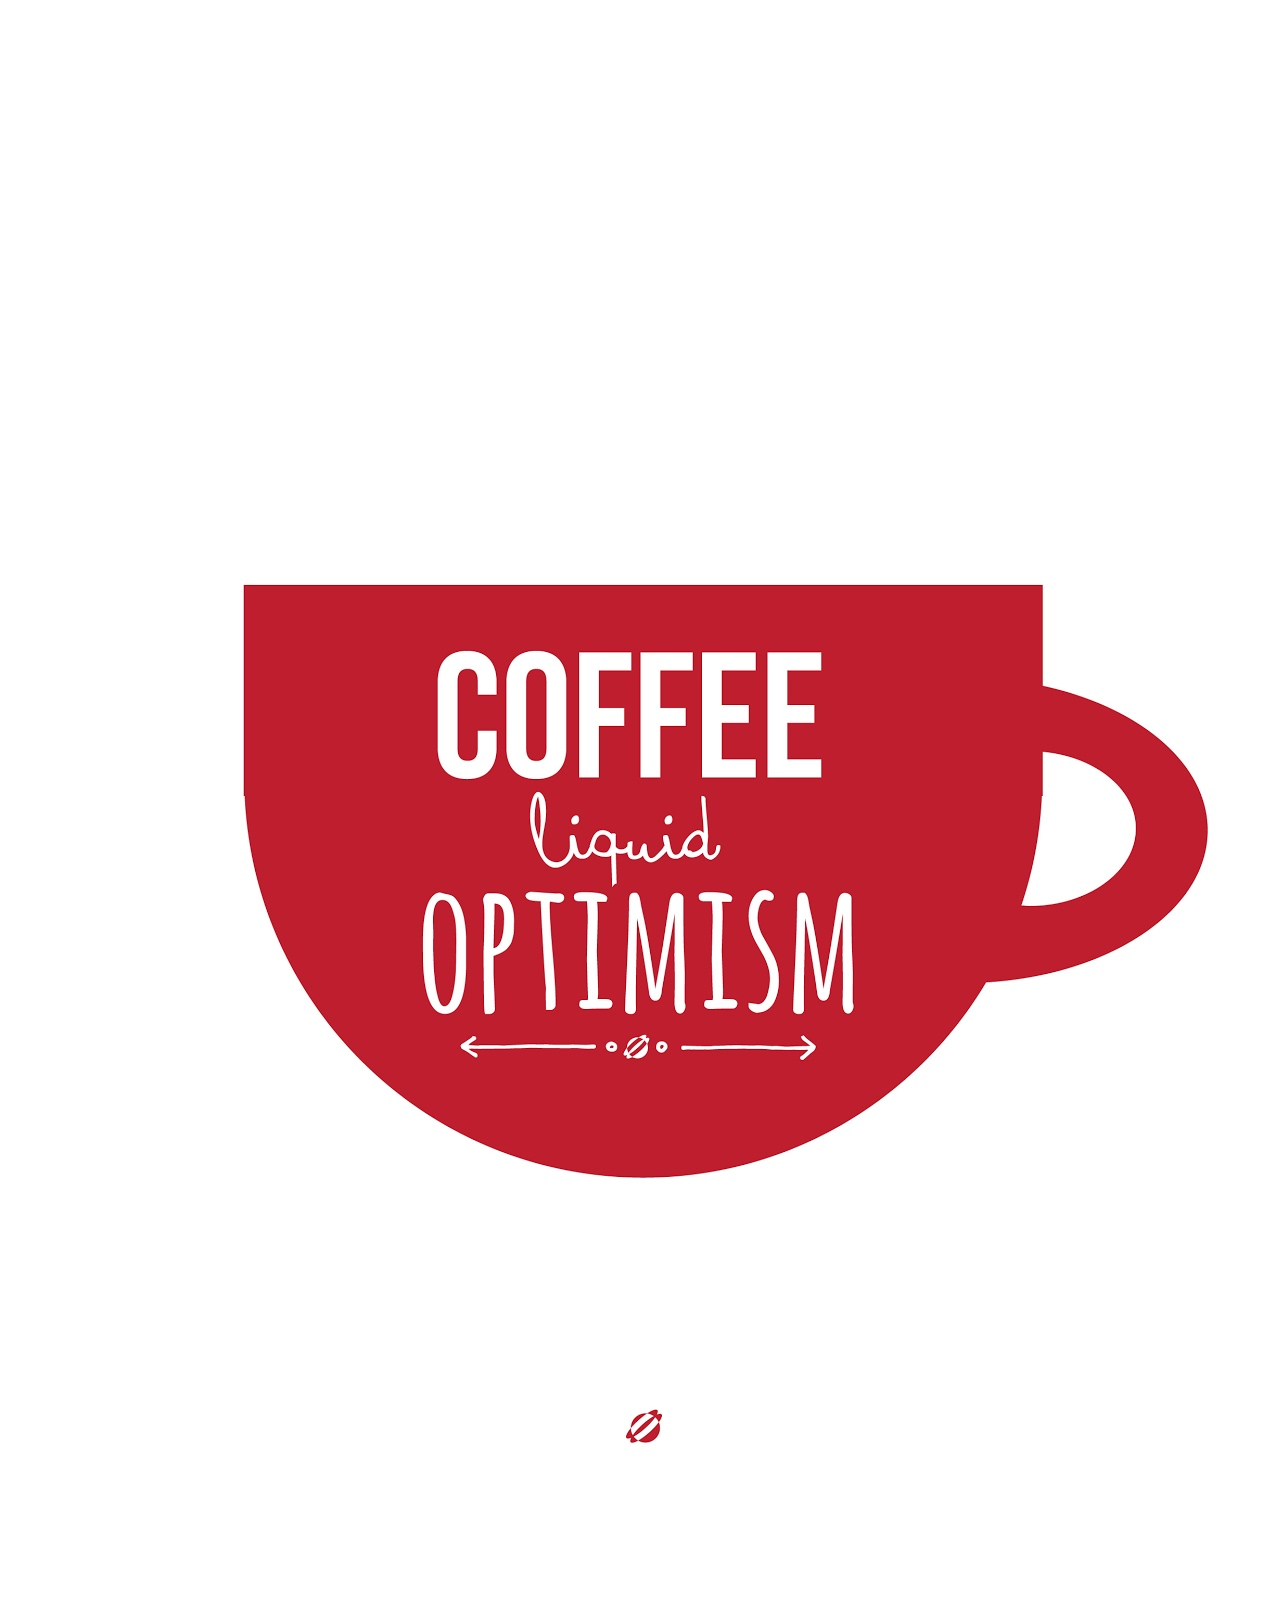 LostBumblebee 2013 LIQUID OPTIMISM COFFEE - FREE PRINTABLE